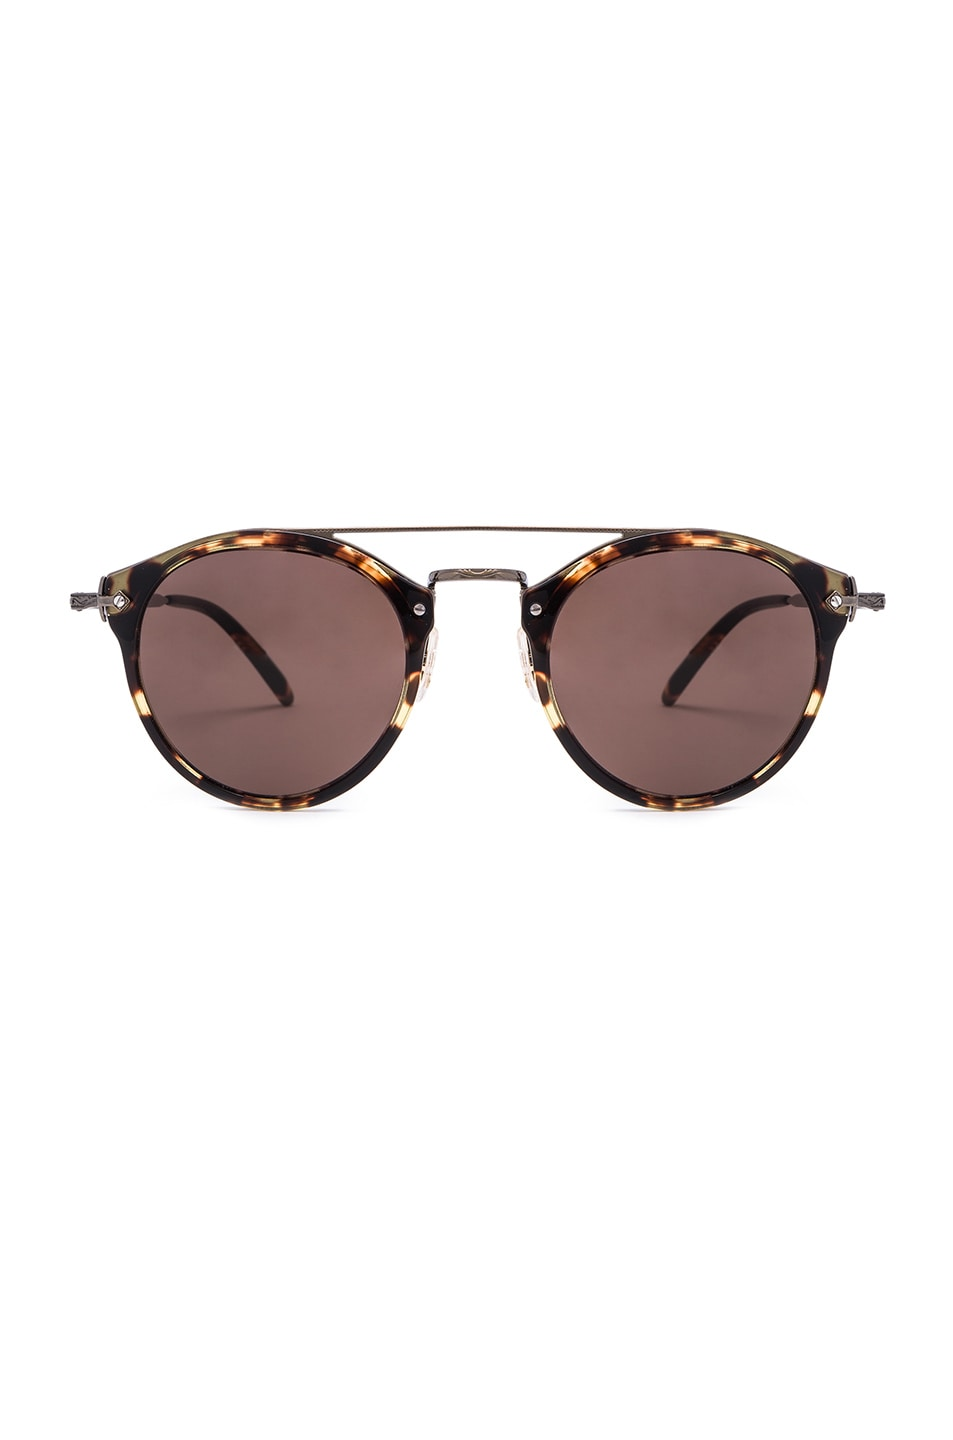 Image 1 of Oliver Peoples Remick Sunglasses in Vintage & Antique Gold